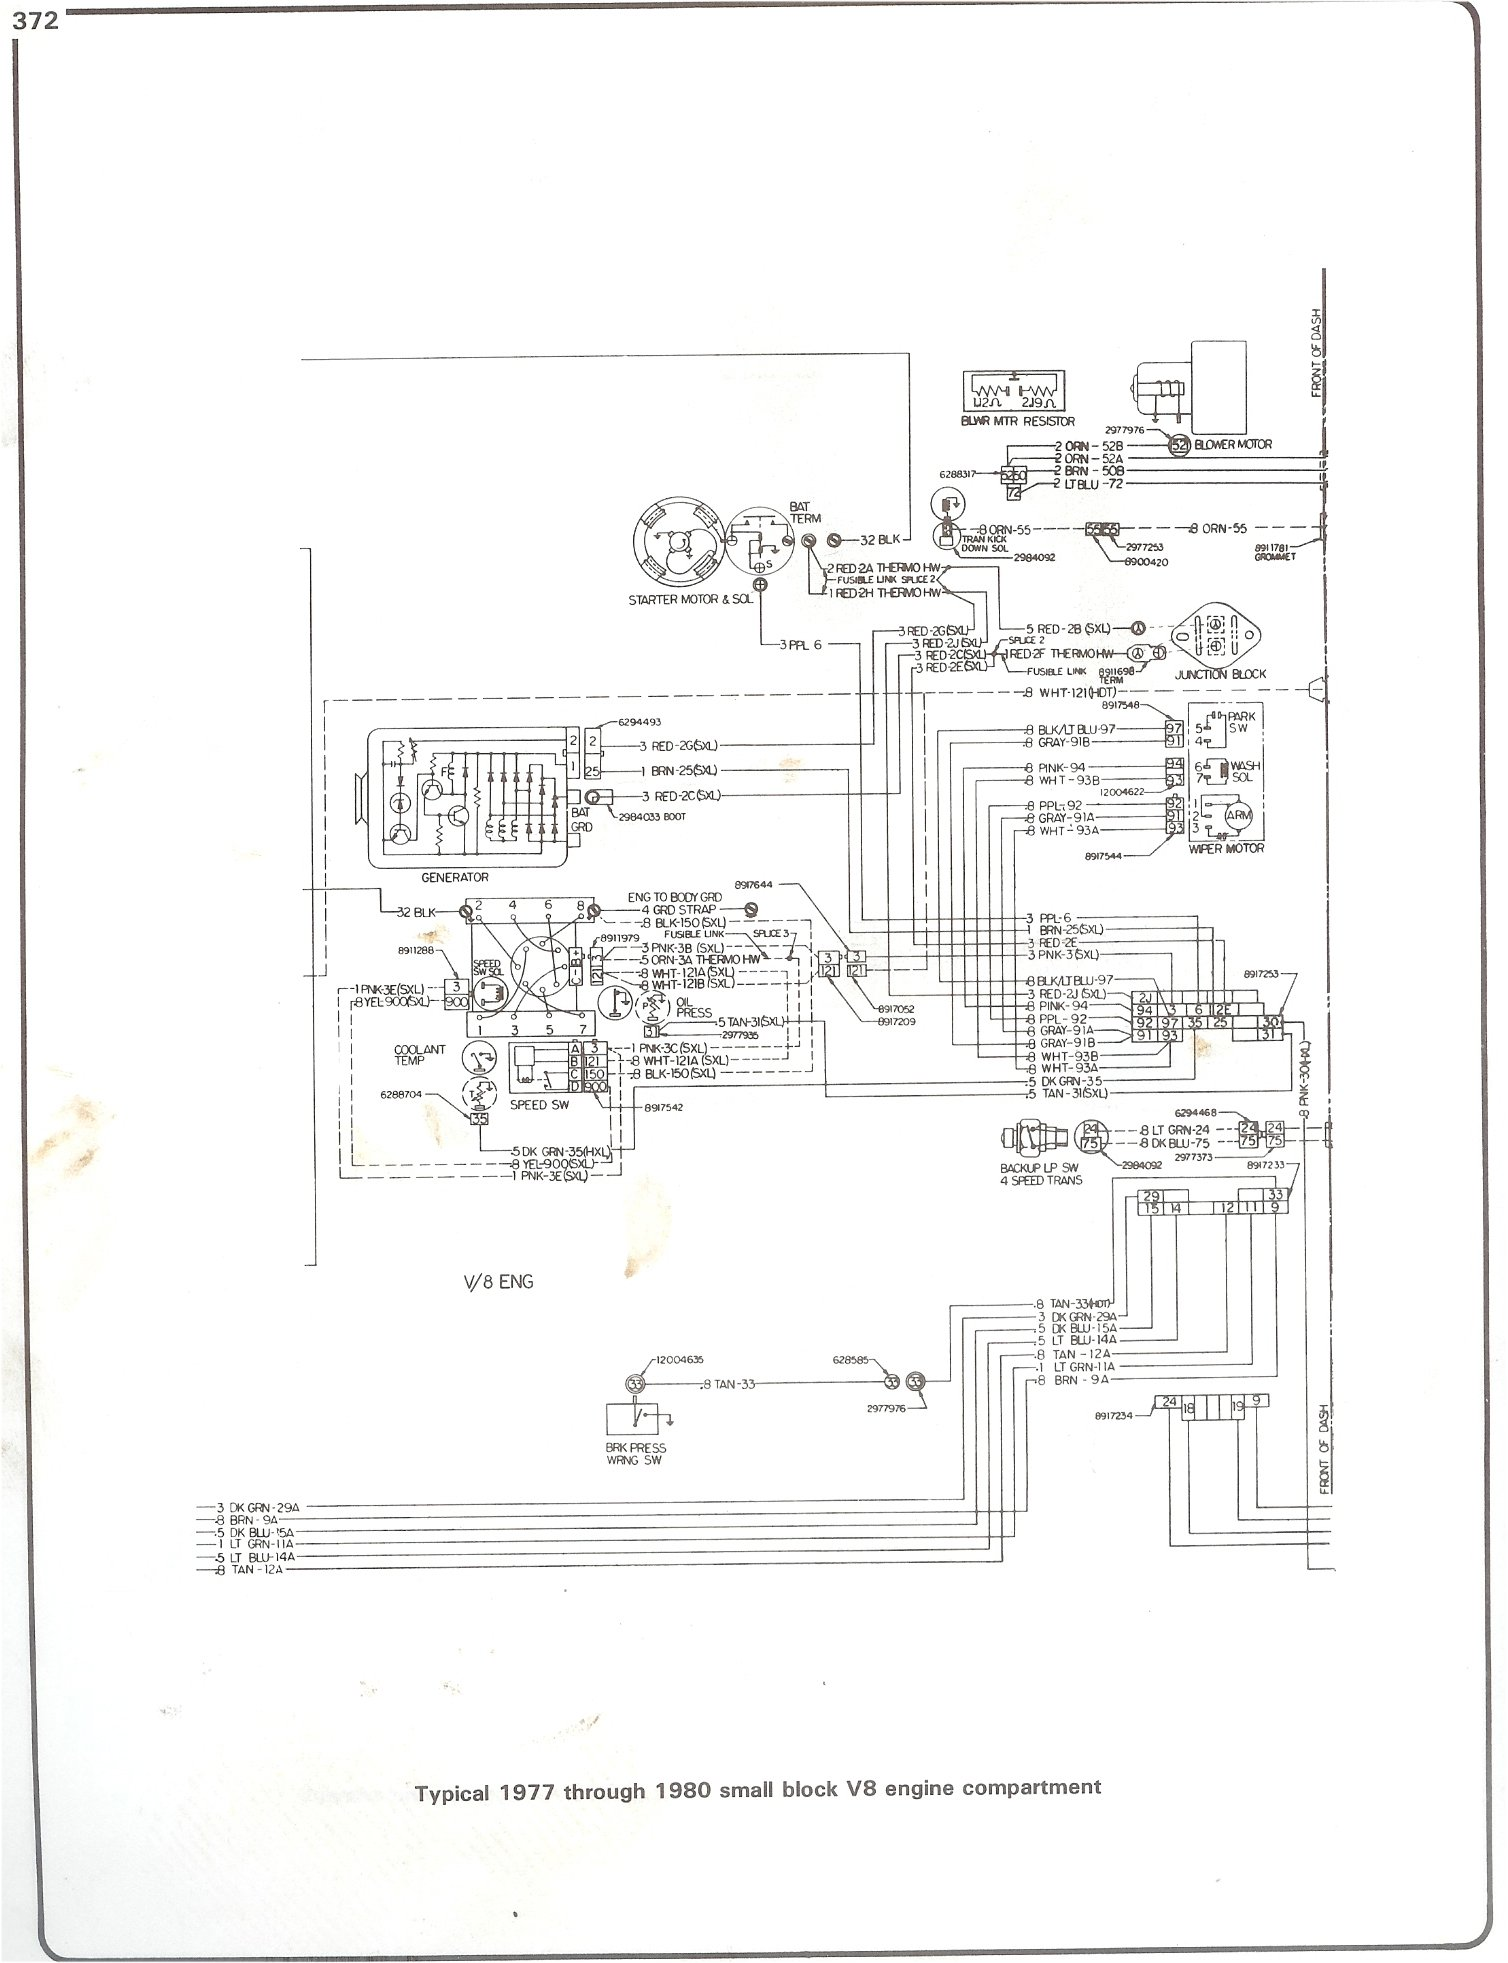 Plete 7387 Wiring Diagrams. 7780 Sbc Engine Wiring. Wiring. Wiring Diagram For K5 Blazer At Scoala.co